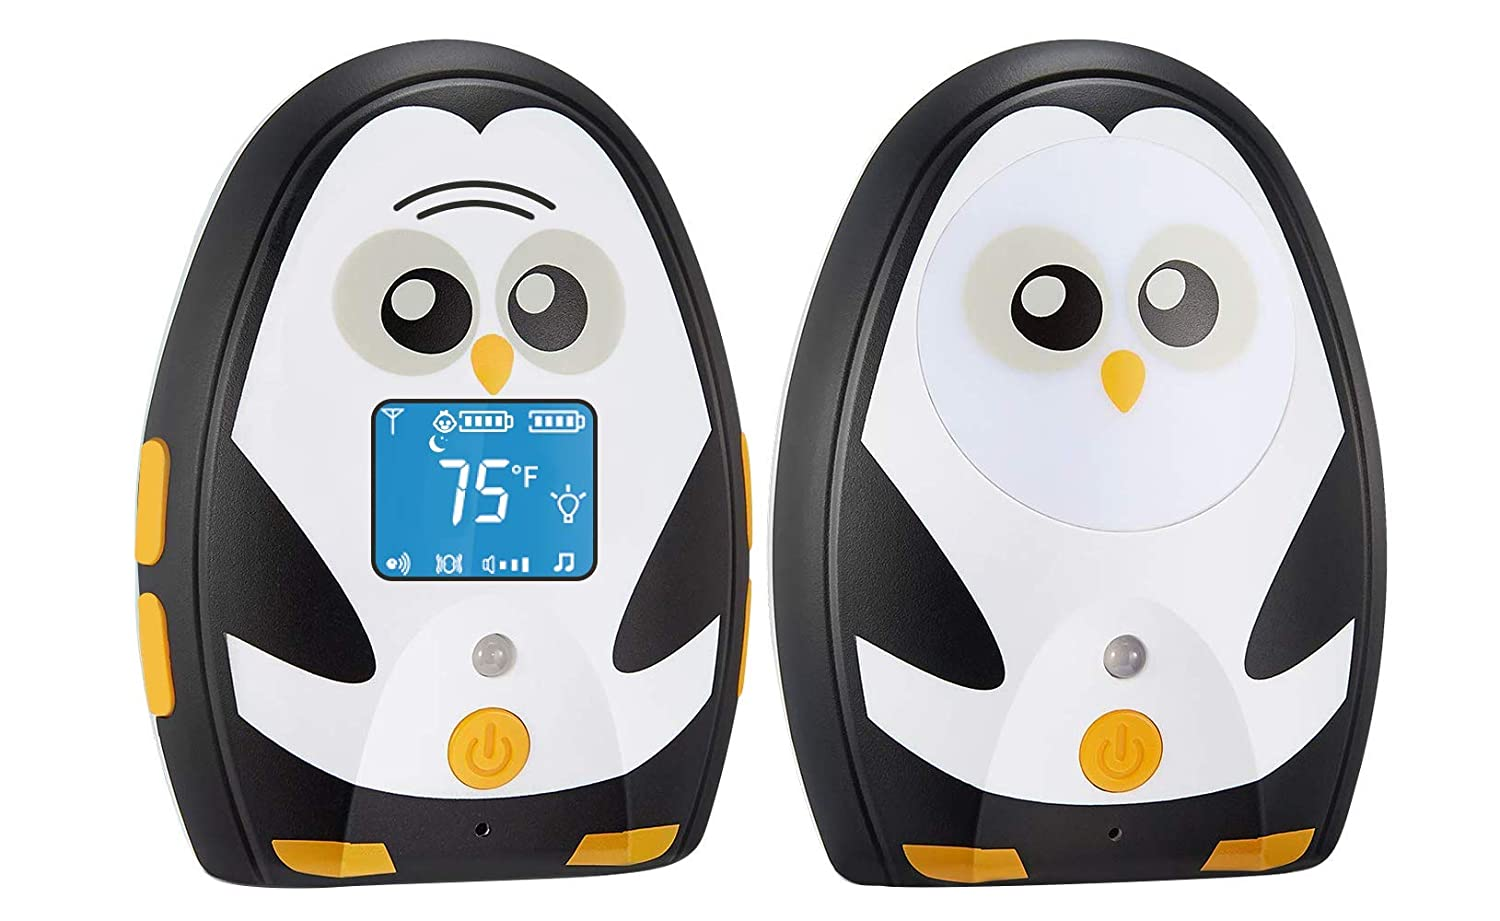 TimeFlys Digital Audio Baby Monitor Mustang QQ, Long Range up to 1000 ft, Vibration, Temperature Monitoring, Warning Lullabies, Two Way Talk, LCD Display, Rechargeable Battery, Night Light